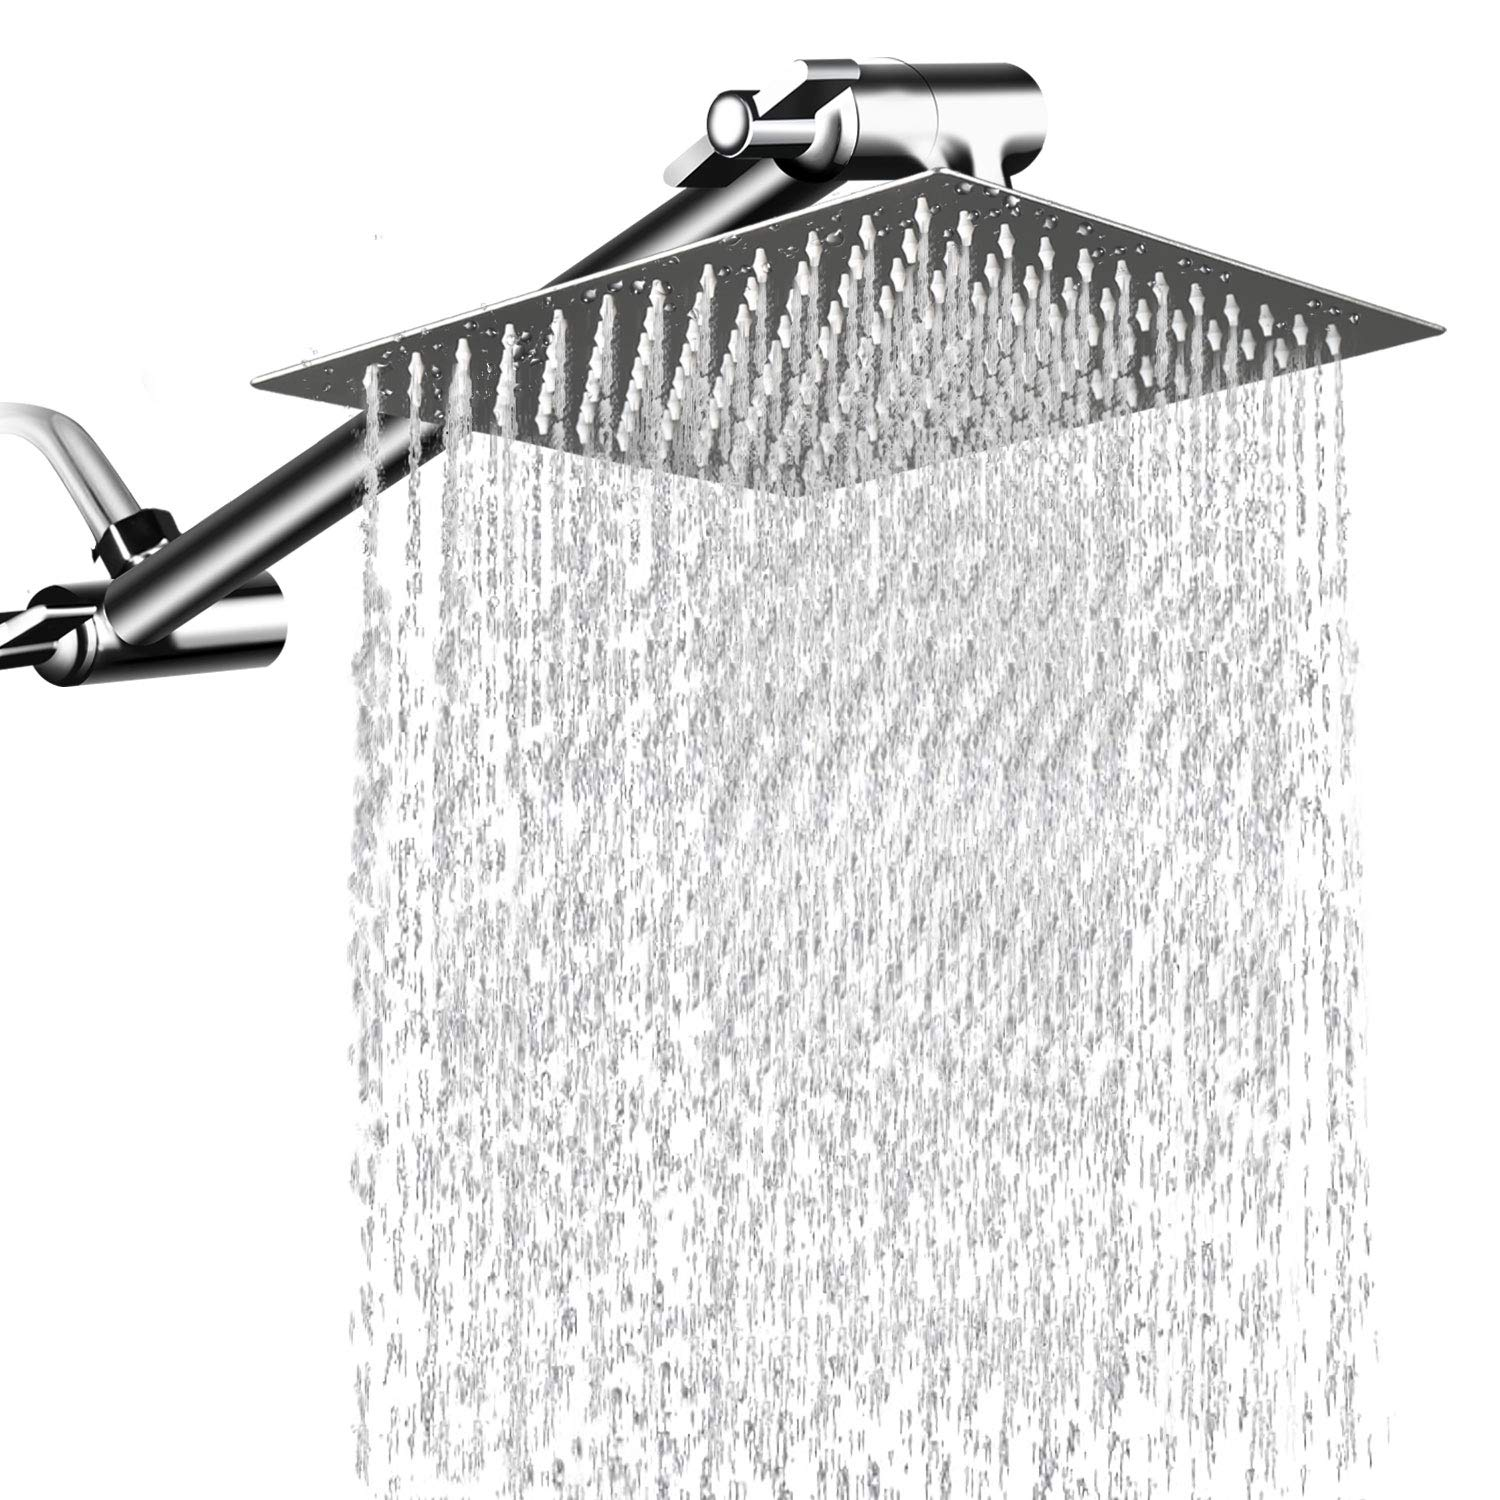 Details About 12 Inch Rain Shower Head With 11 Adjustable Extension Arm High Pressure Usa